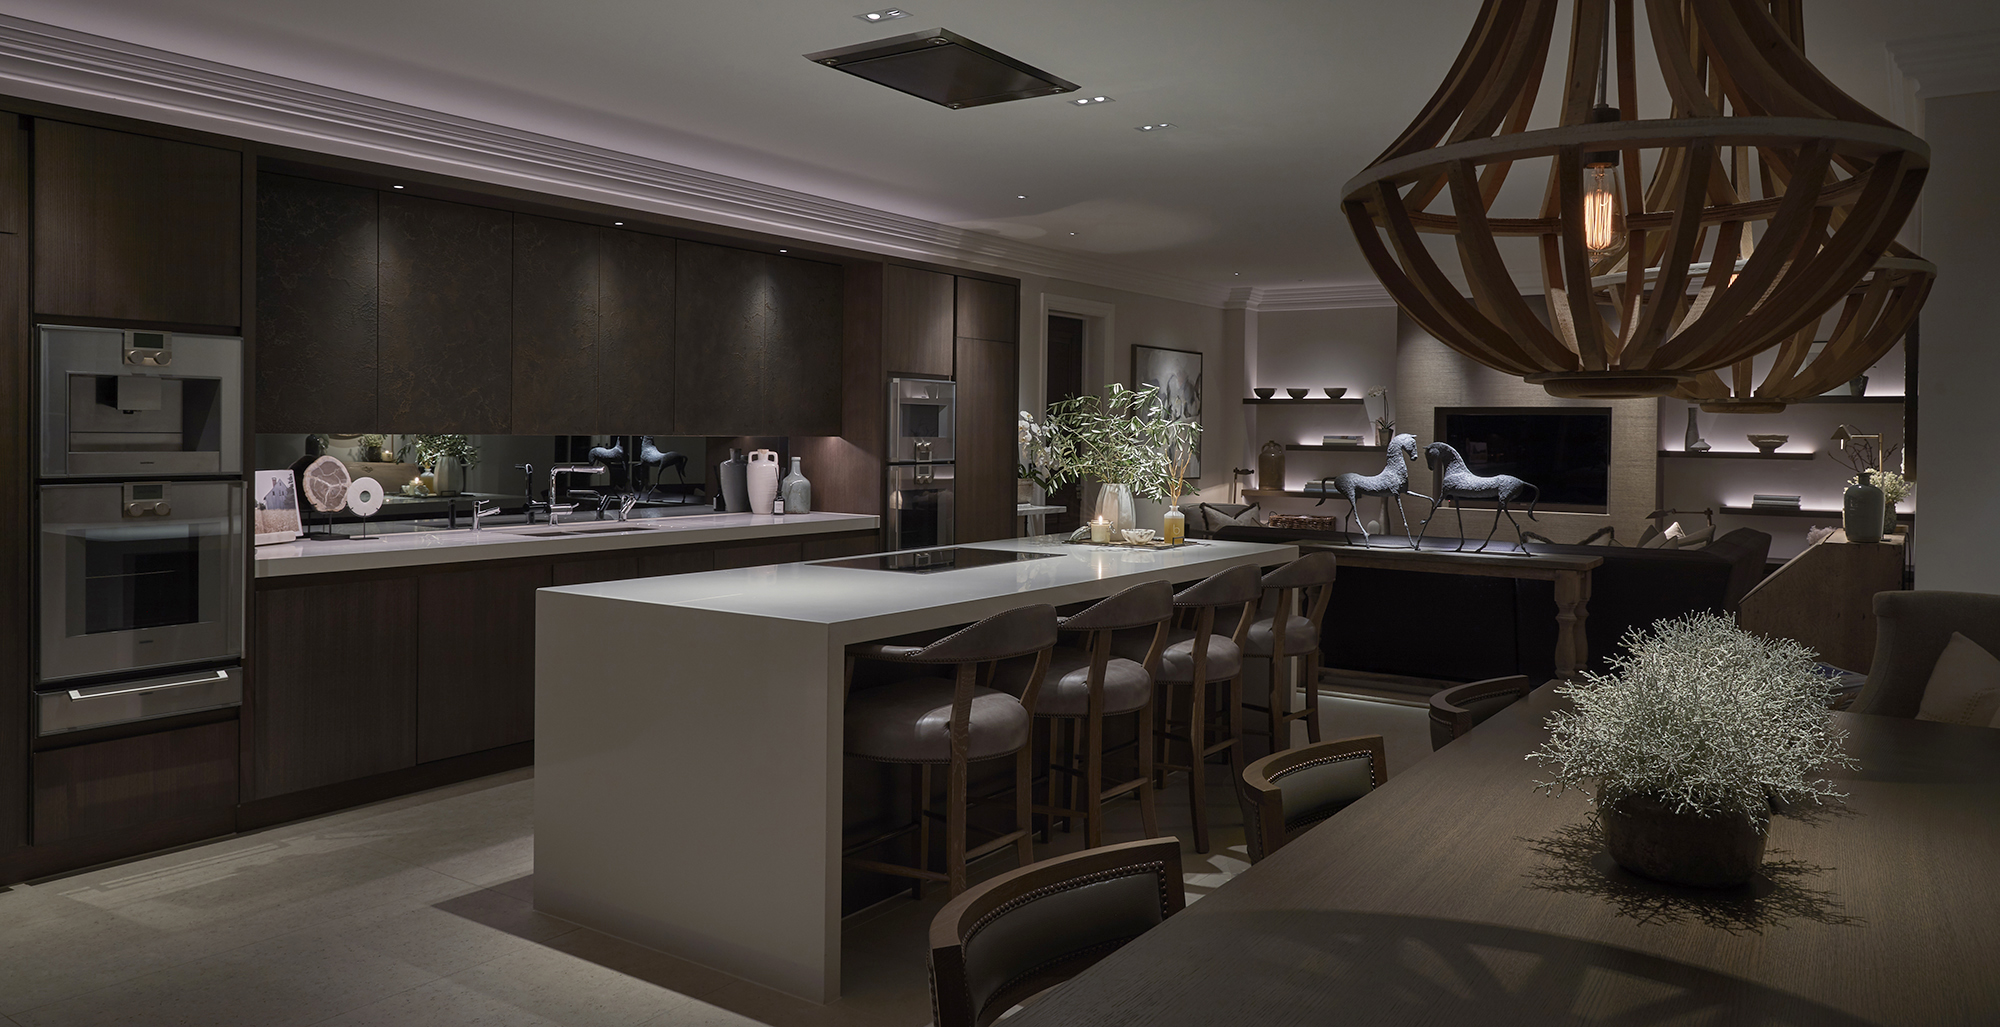 large open plan kitchen with dining and seating areas